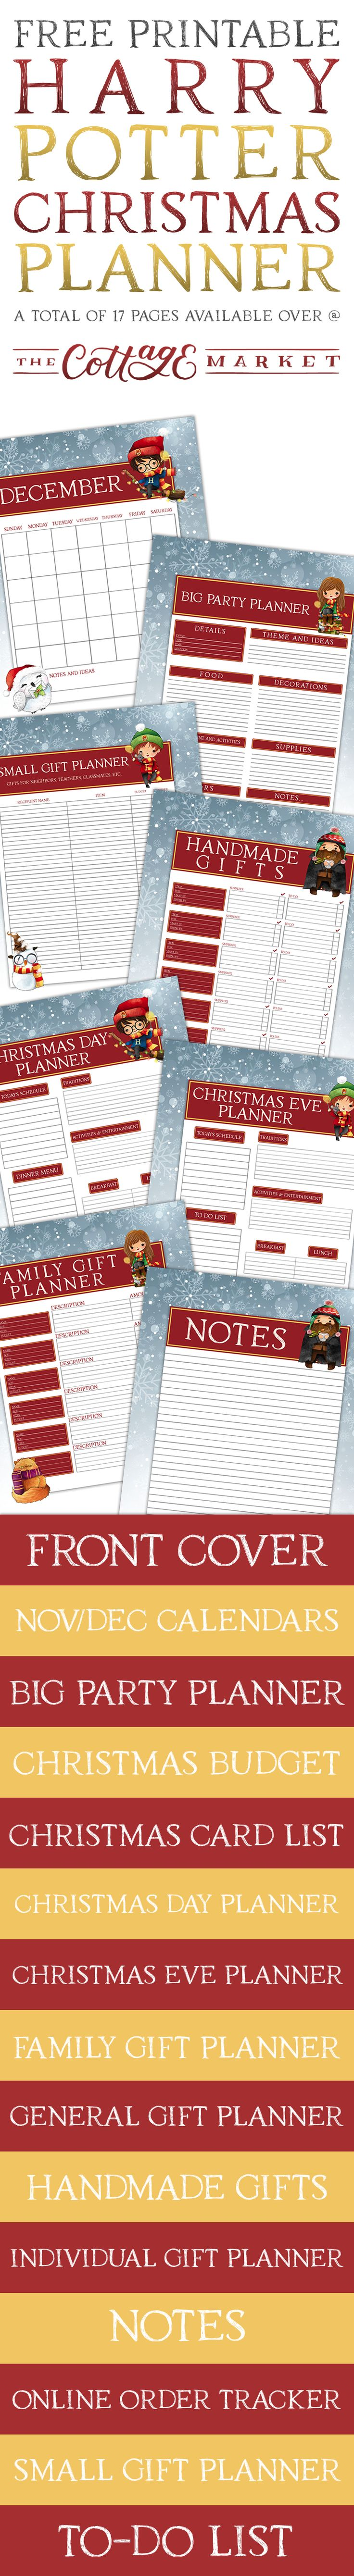 wedding planning checklist spreadsheet free%0A Free Printable Harry Potter Christmas Planner